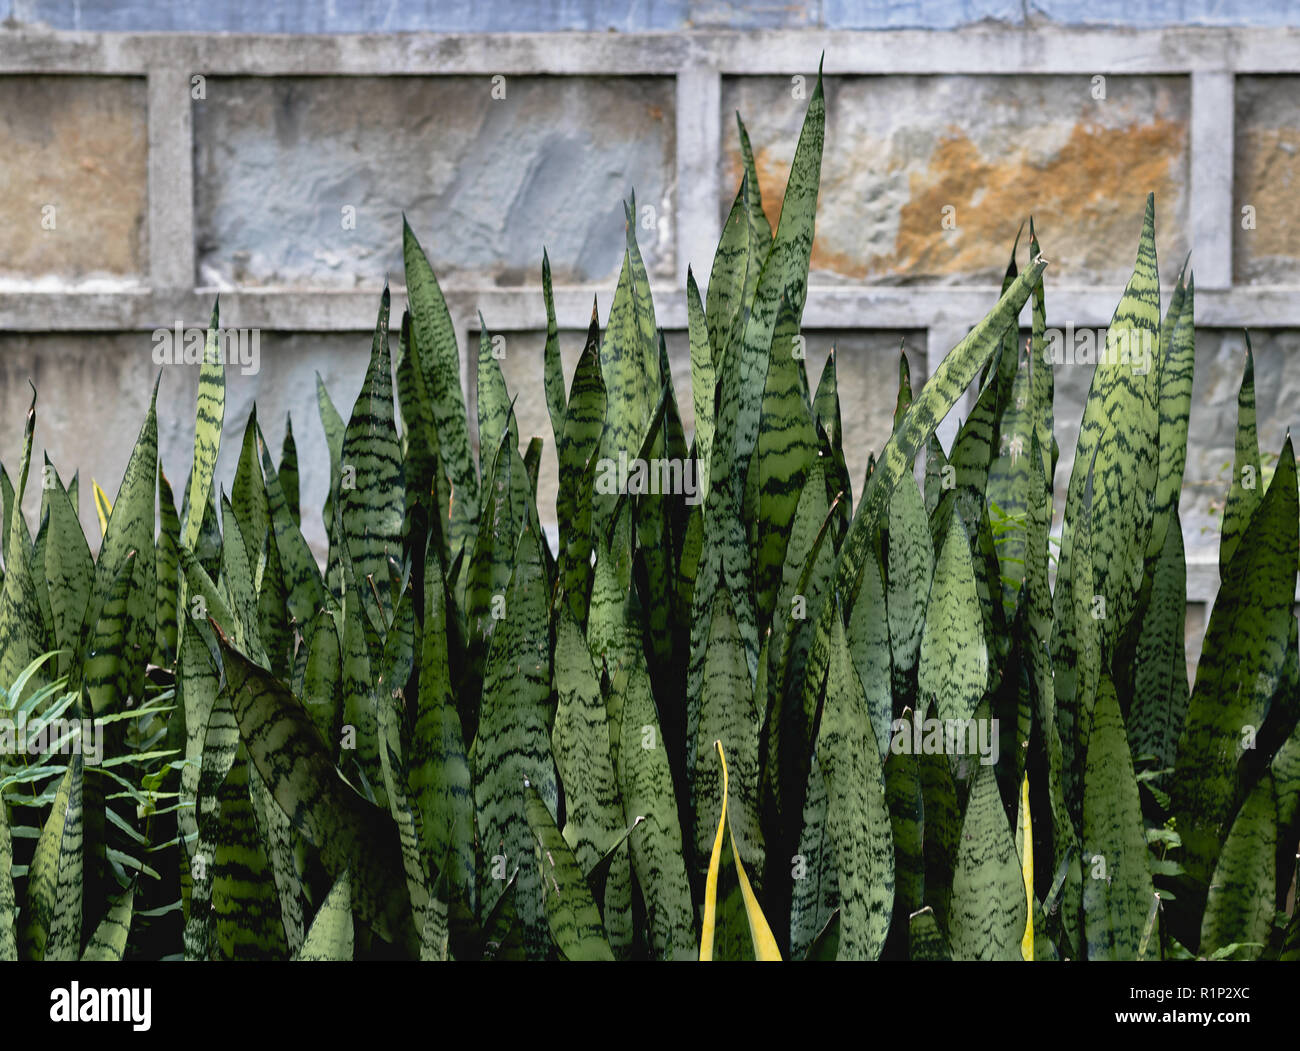 Vietnam, Ninh Binh. Pictured Light green pointy plants with dark green pattern against a grey stone background. - Stock Image